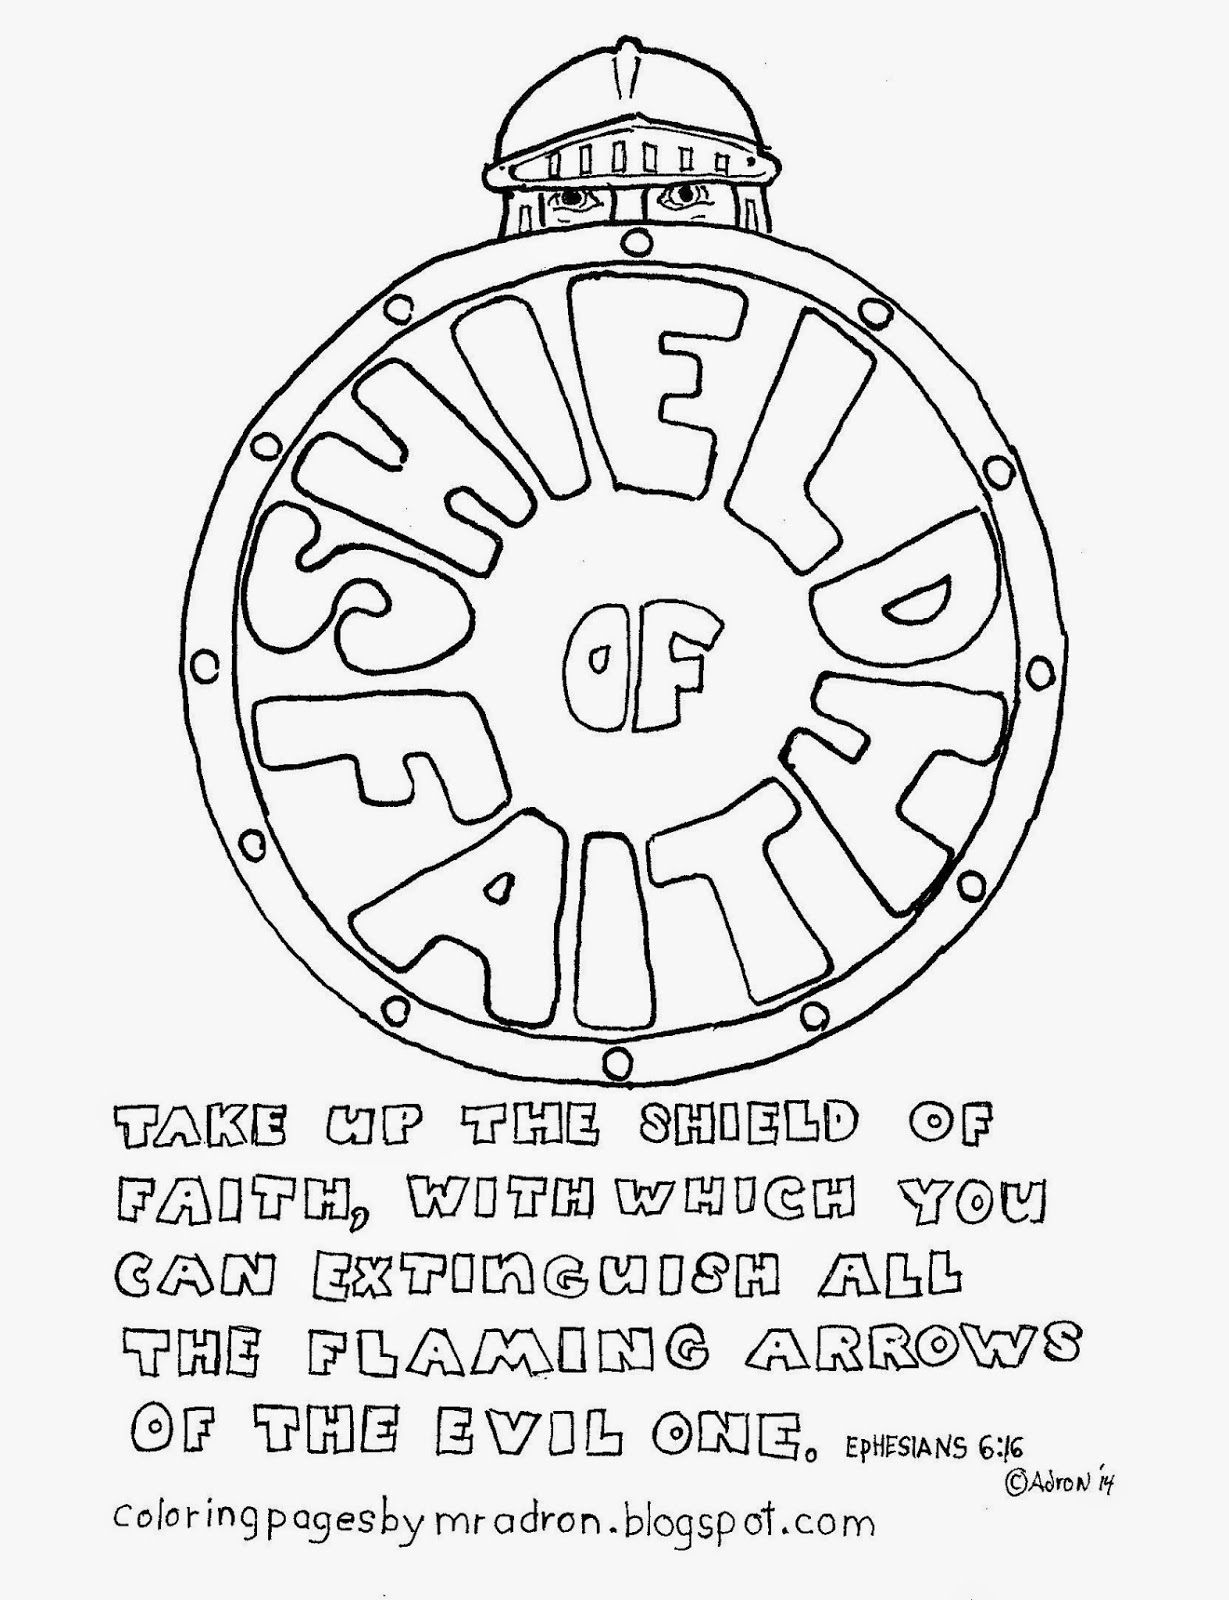 An illustration of Ephesians 6:16 to print and color.